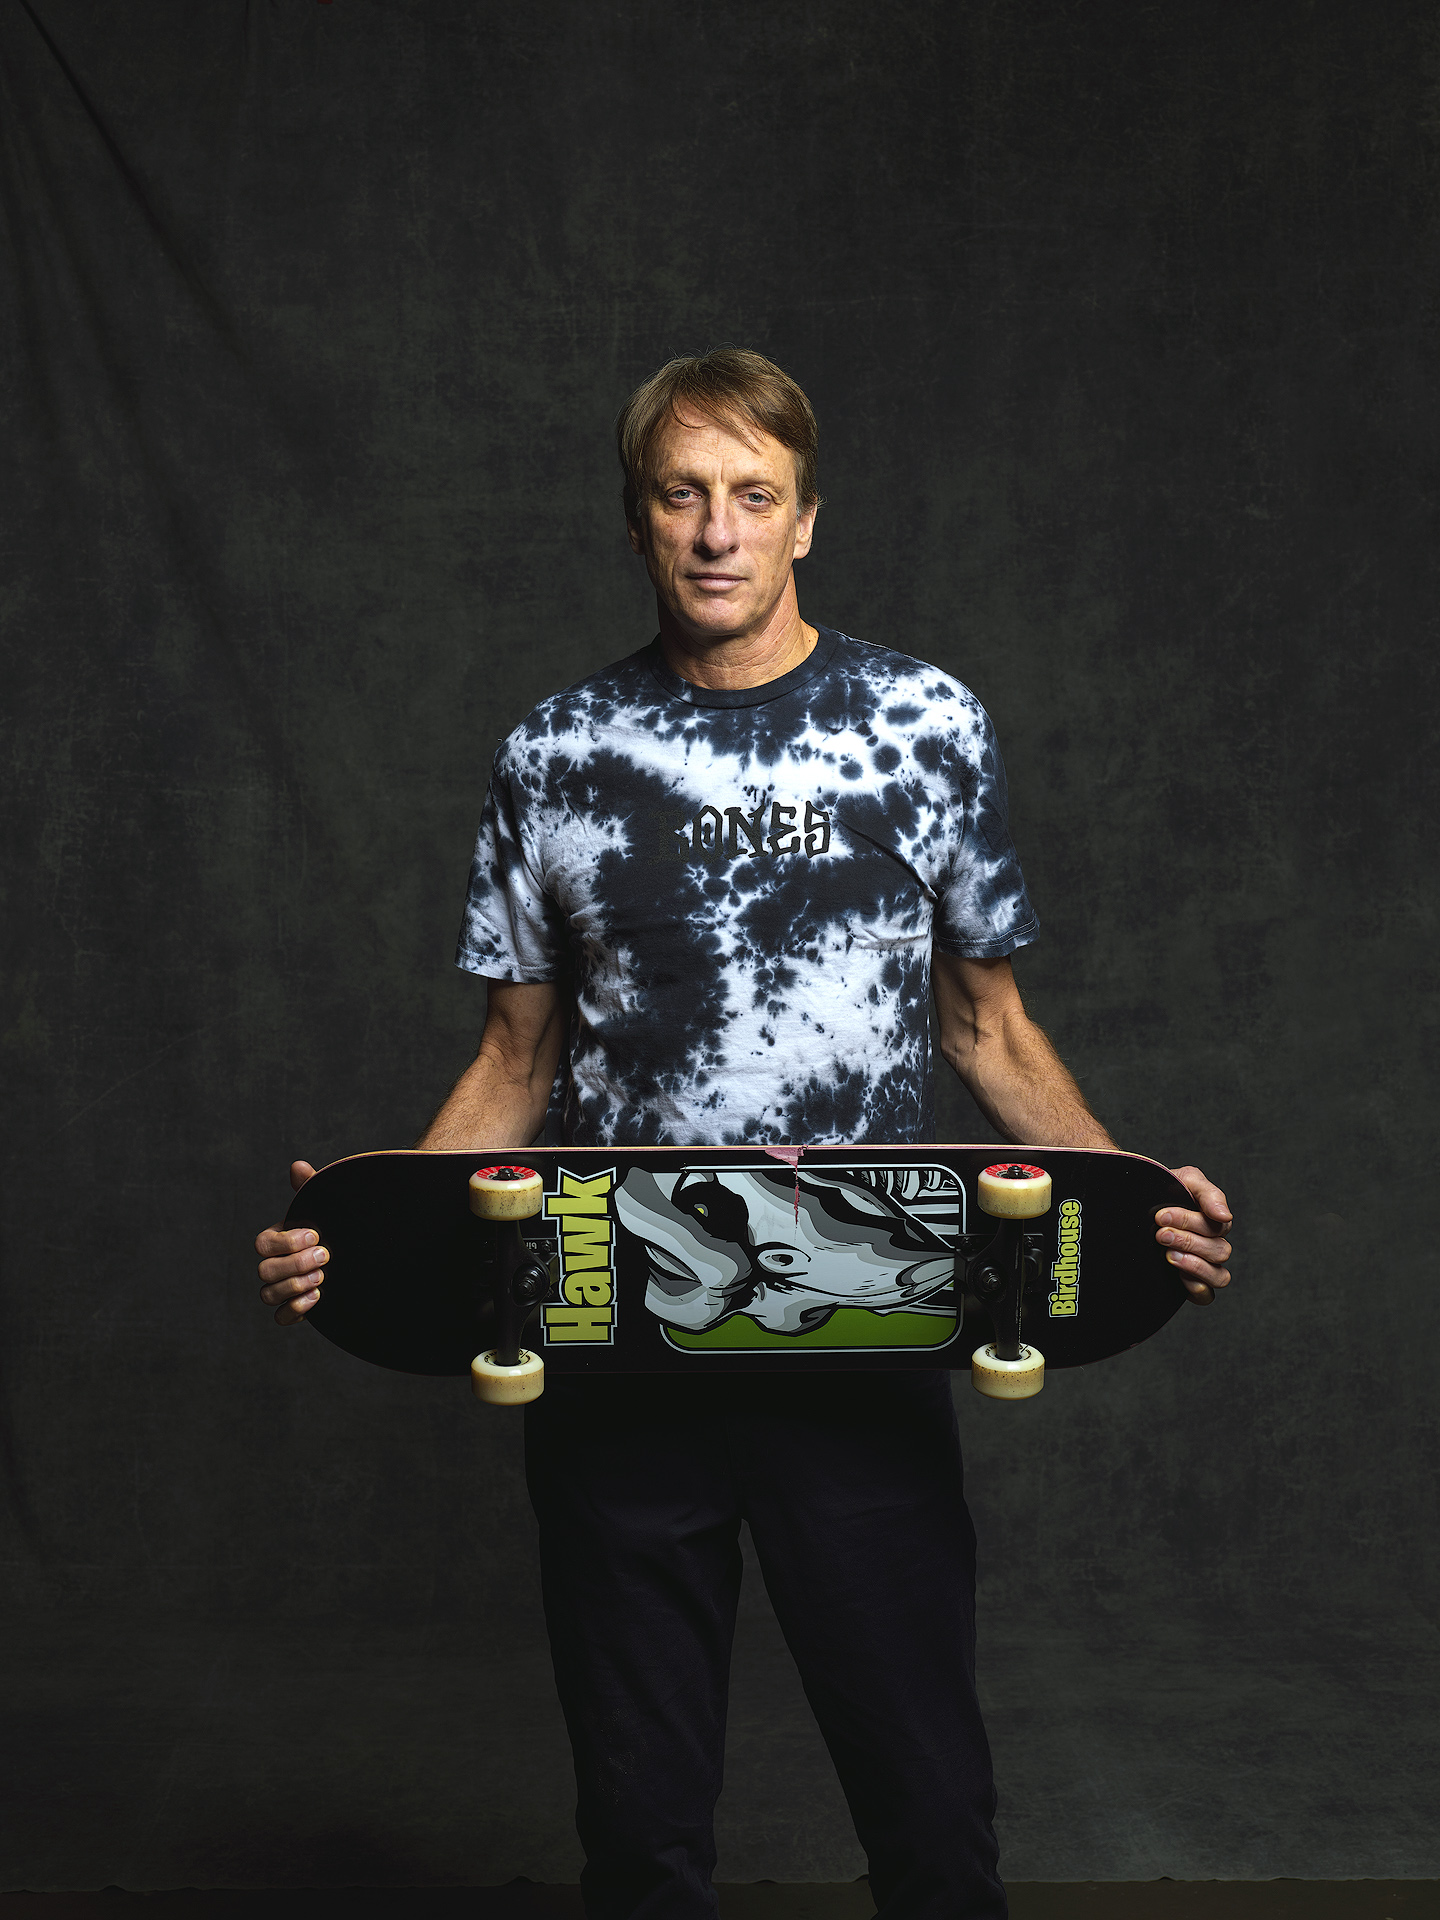 Tony Hawk Foundation Project - Tony Hawk